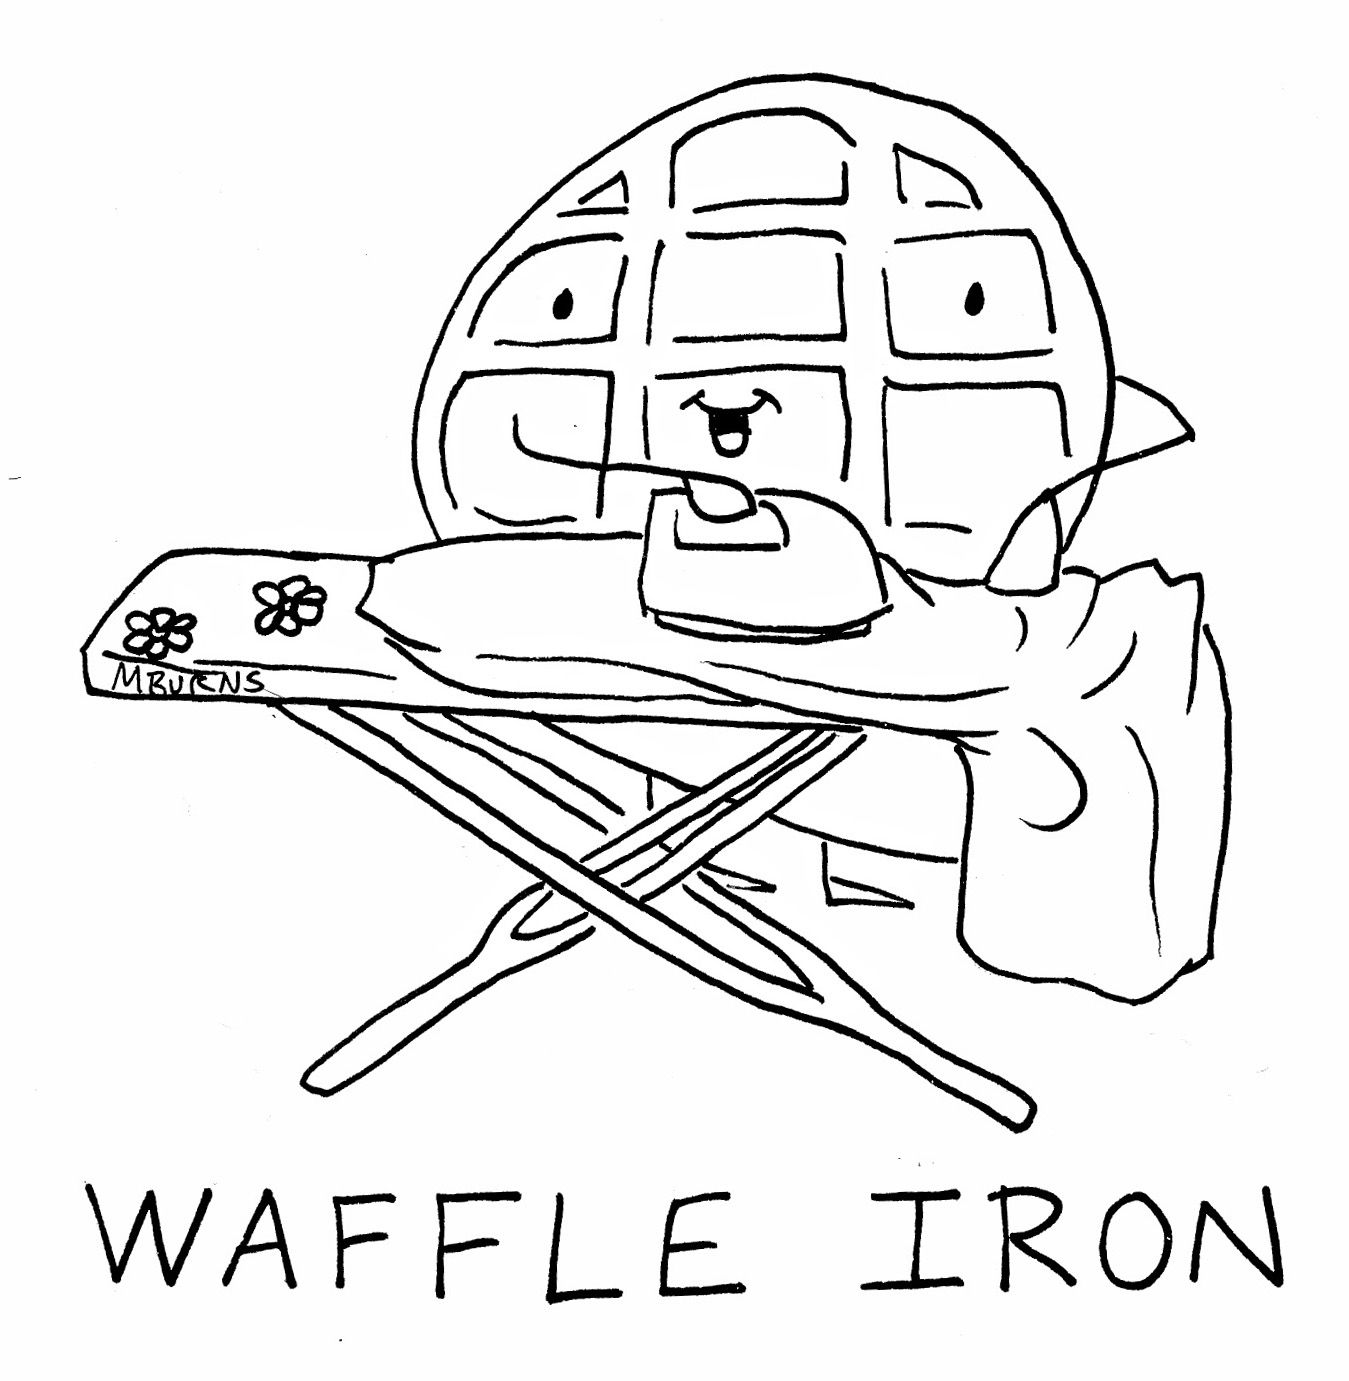 Waffles coloring sheets yahoo image search results for Waffle coloring page